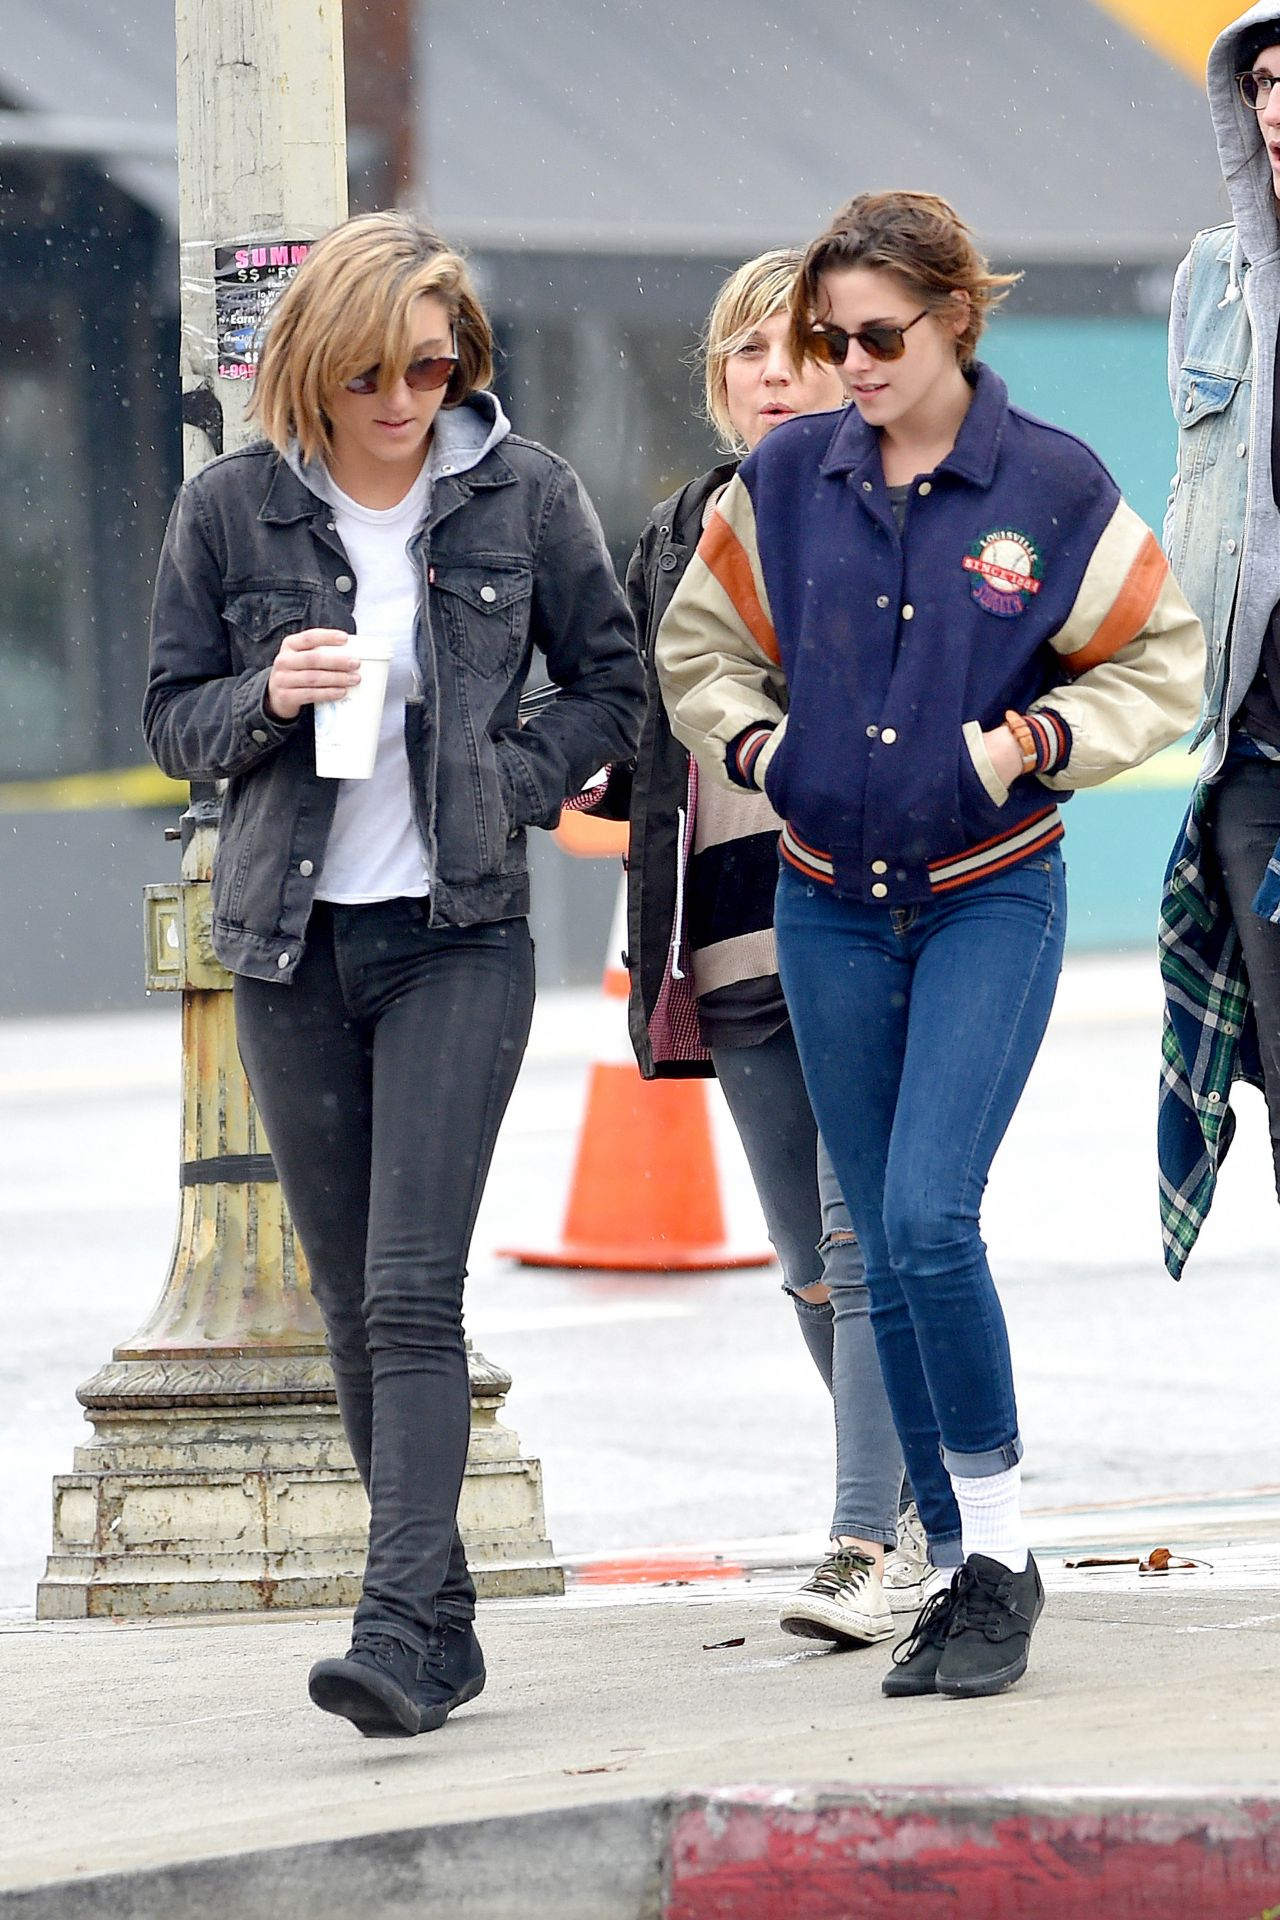 Kristen Stewart 2015 Fotos De Famosos Street Style Out With Friends In La Jan